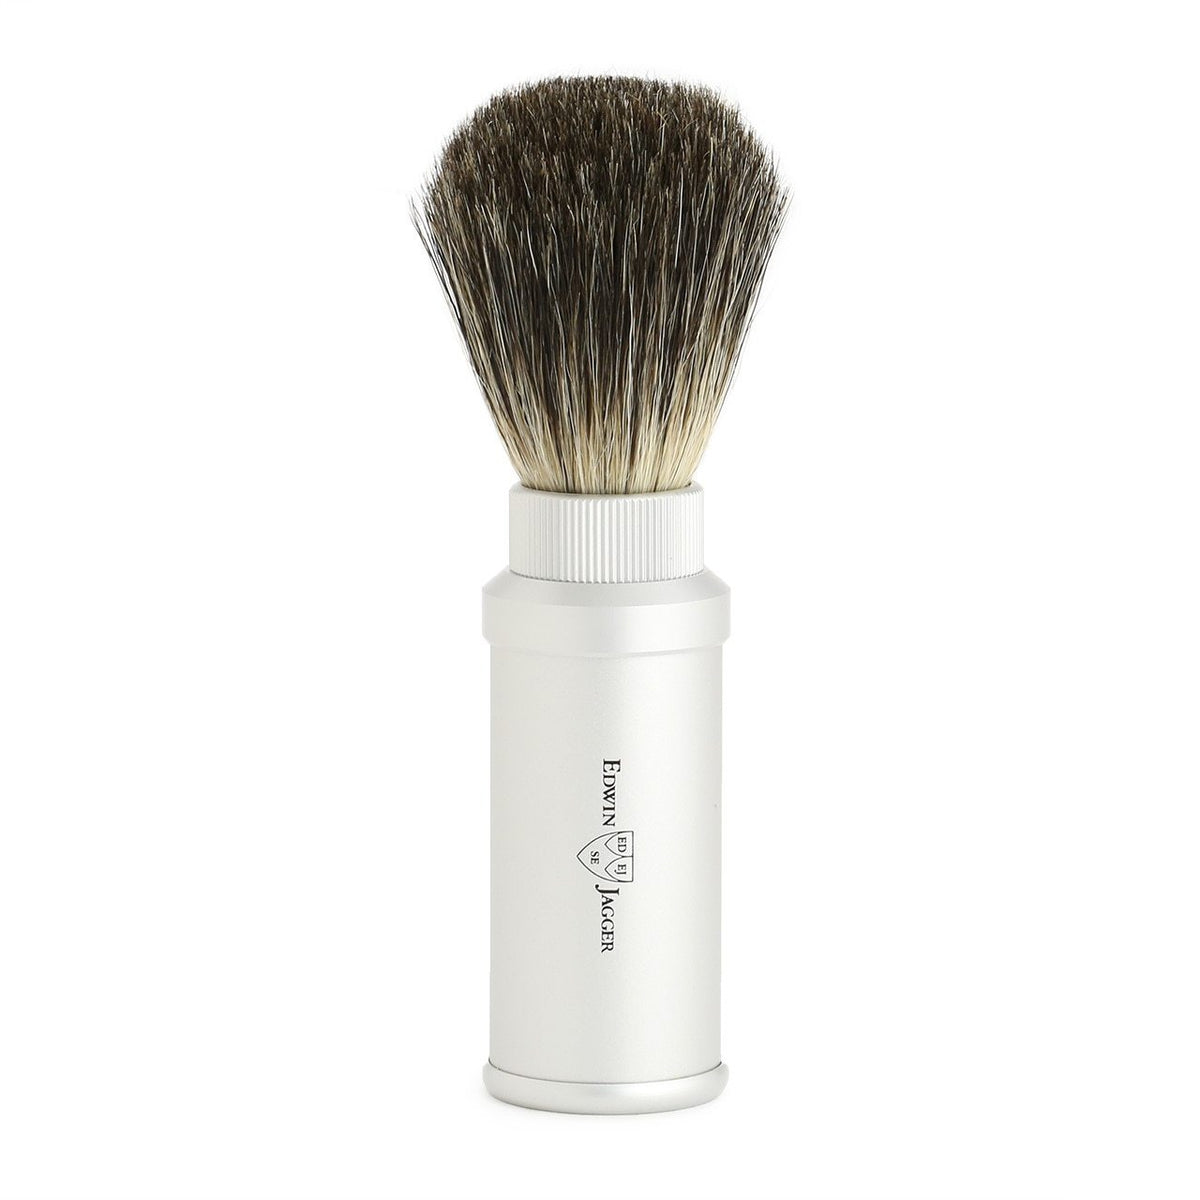 Edwin Jagger Travel Pure Badger Shaving Brush  - Silver